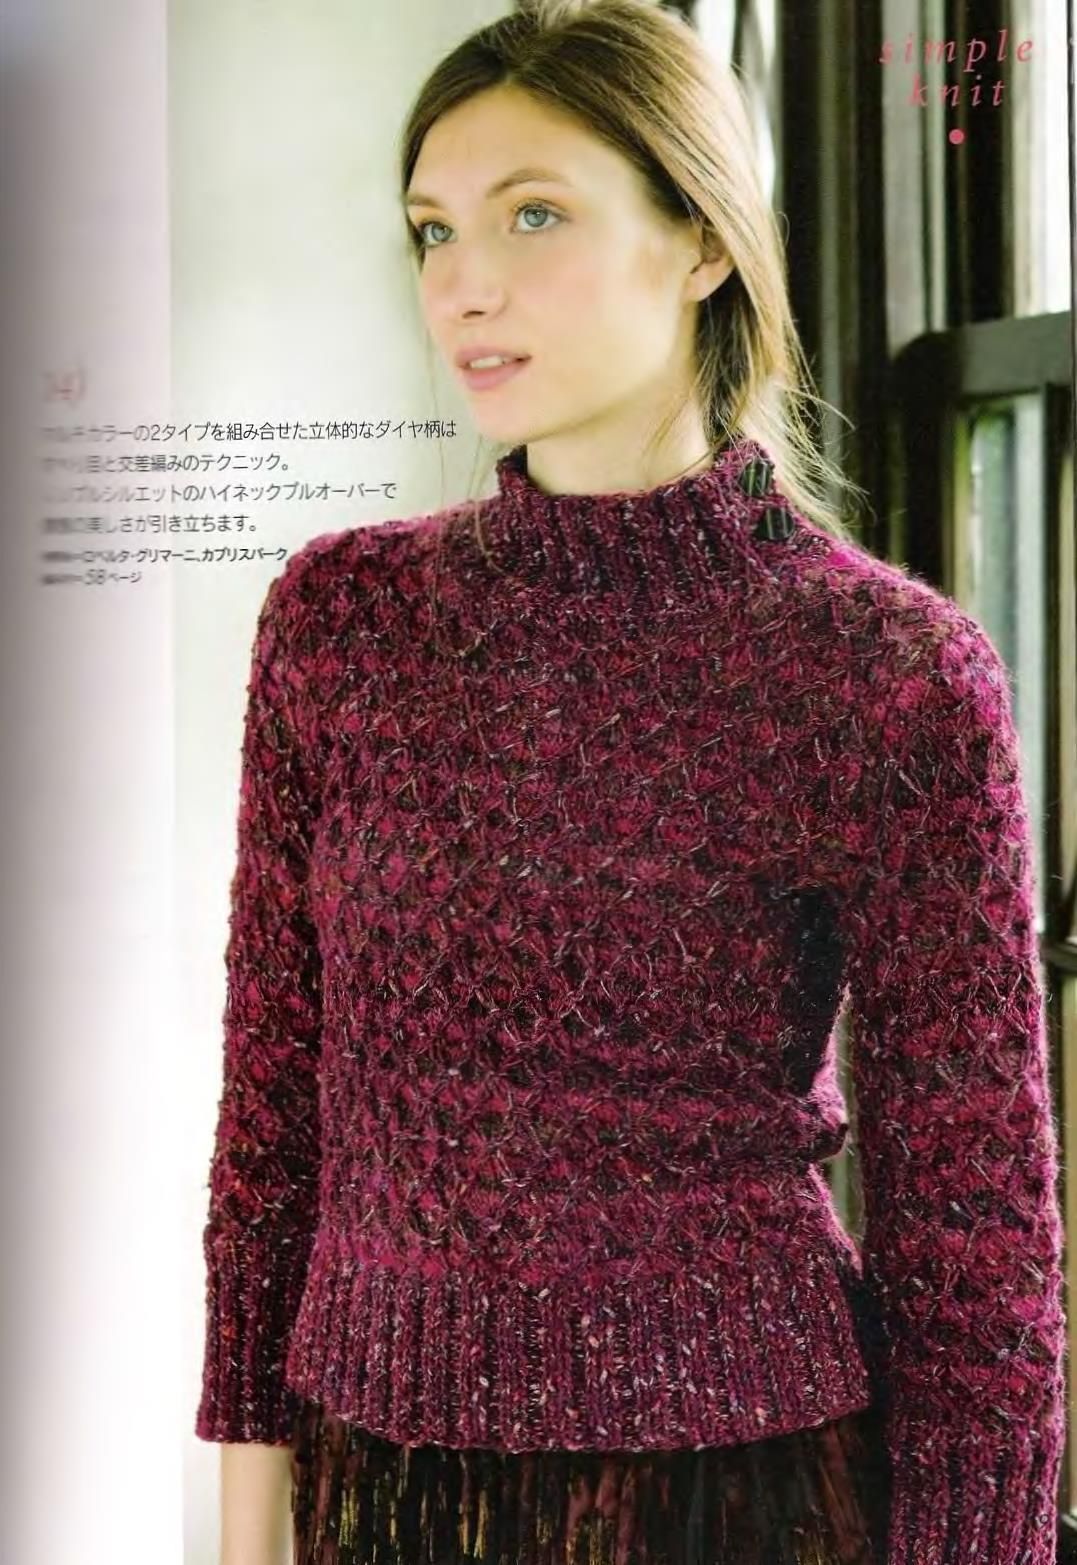 Let's knit series NV4375 2008 M-L sp-kr_19